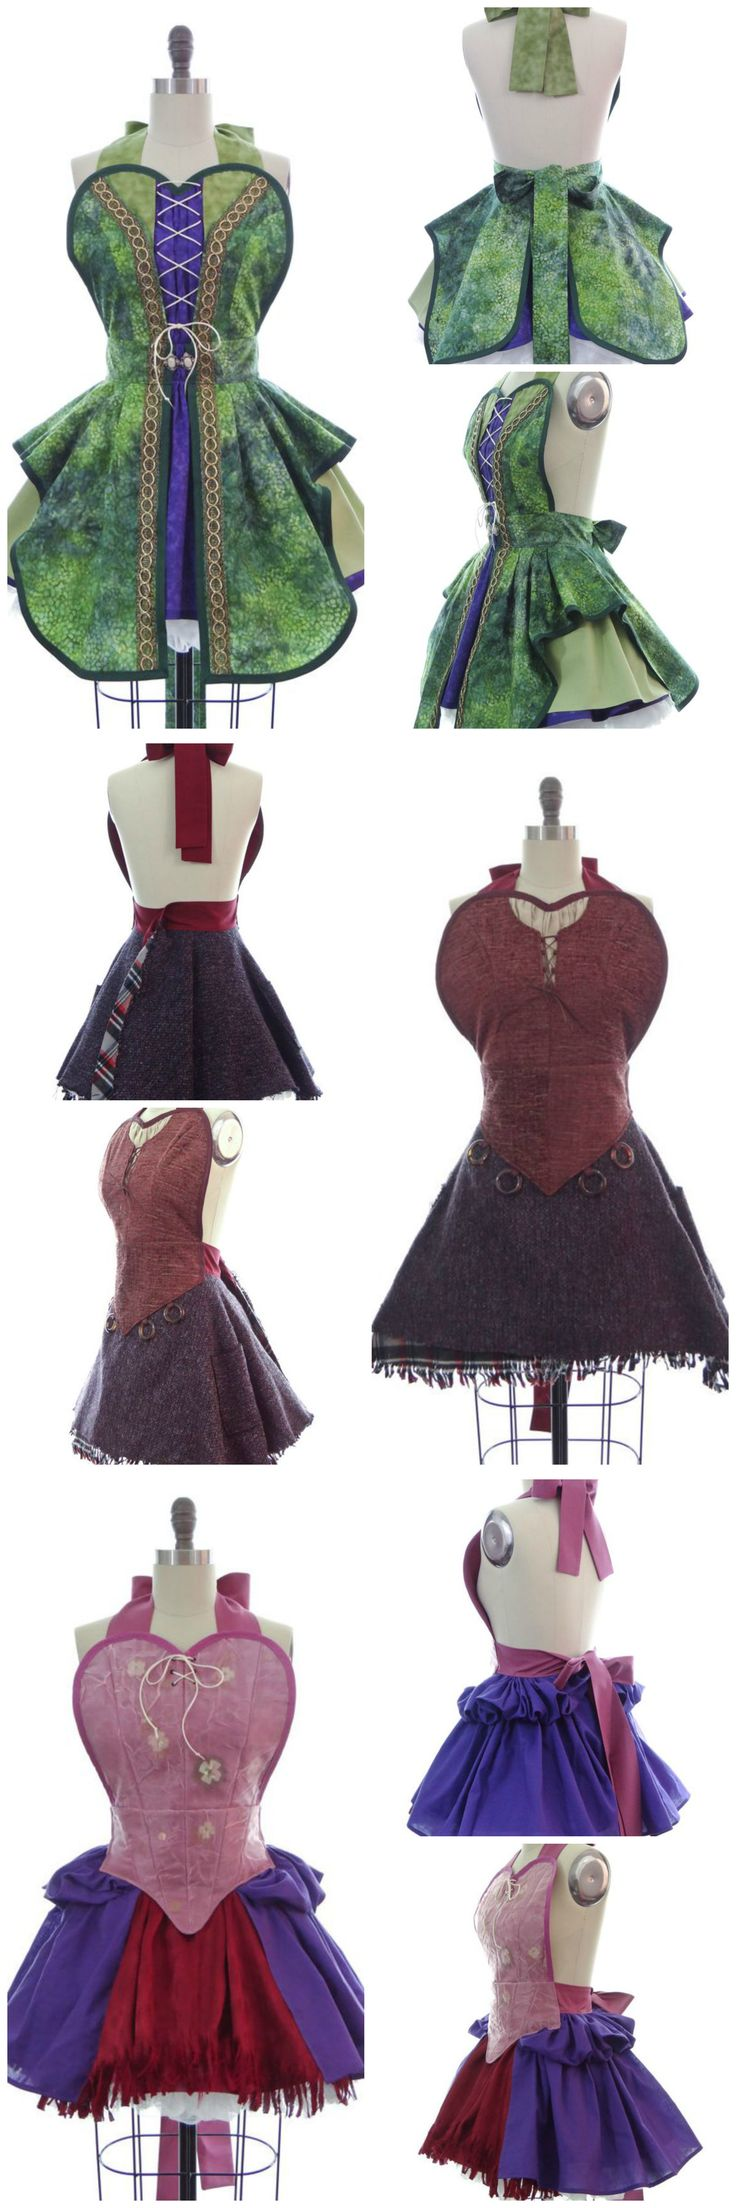 What to wear at your Hocus Pocus Halloween Party?  Why a Sanderson Sister apron, of course!  We have aprons for Winifred, Mary and Sarah Sanderson.  You will absolutely put a bewitching spell on your guests if you wear these!